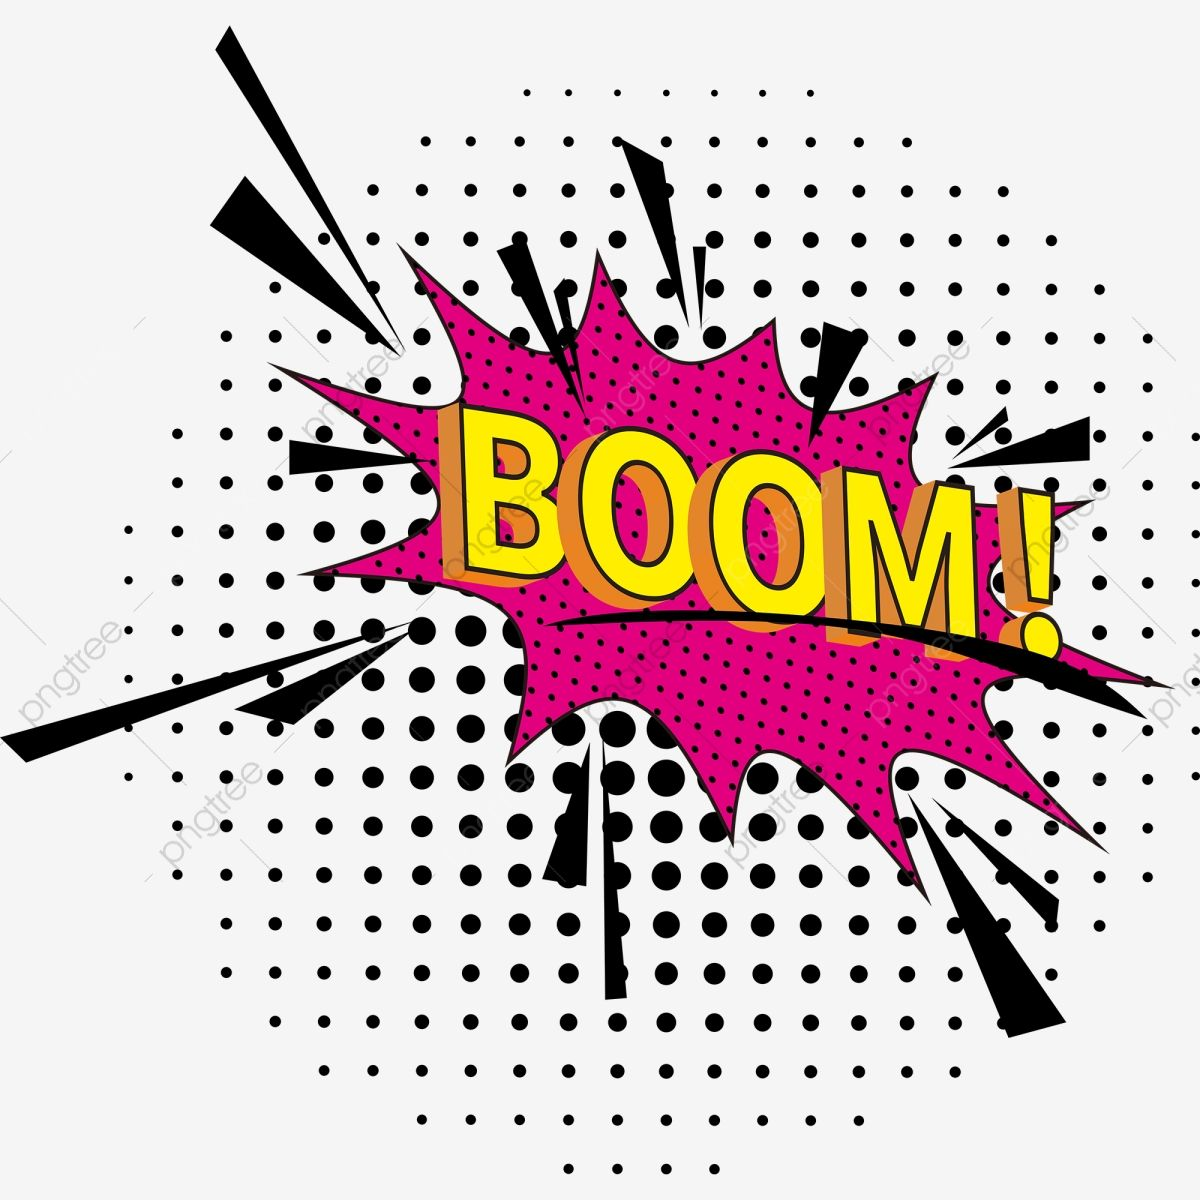 Modern Pop Art Explosion Bubble Boom Modern Pop Art Png And Vector With Transparent Background For Free Download In 2021 Modern Pop Art Pop Art Free Graphic Design